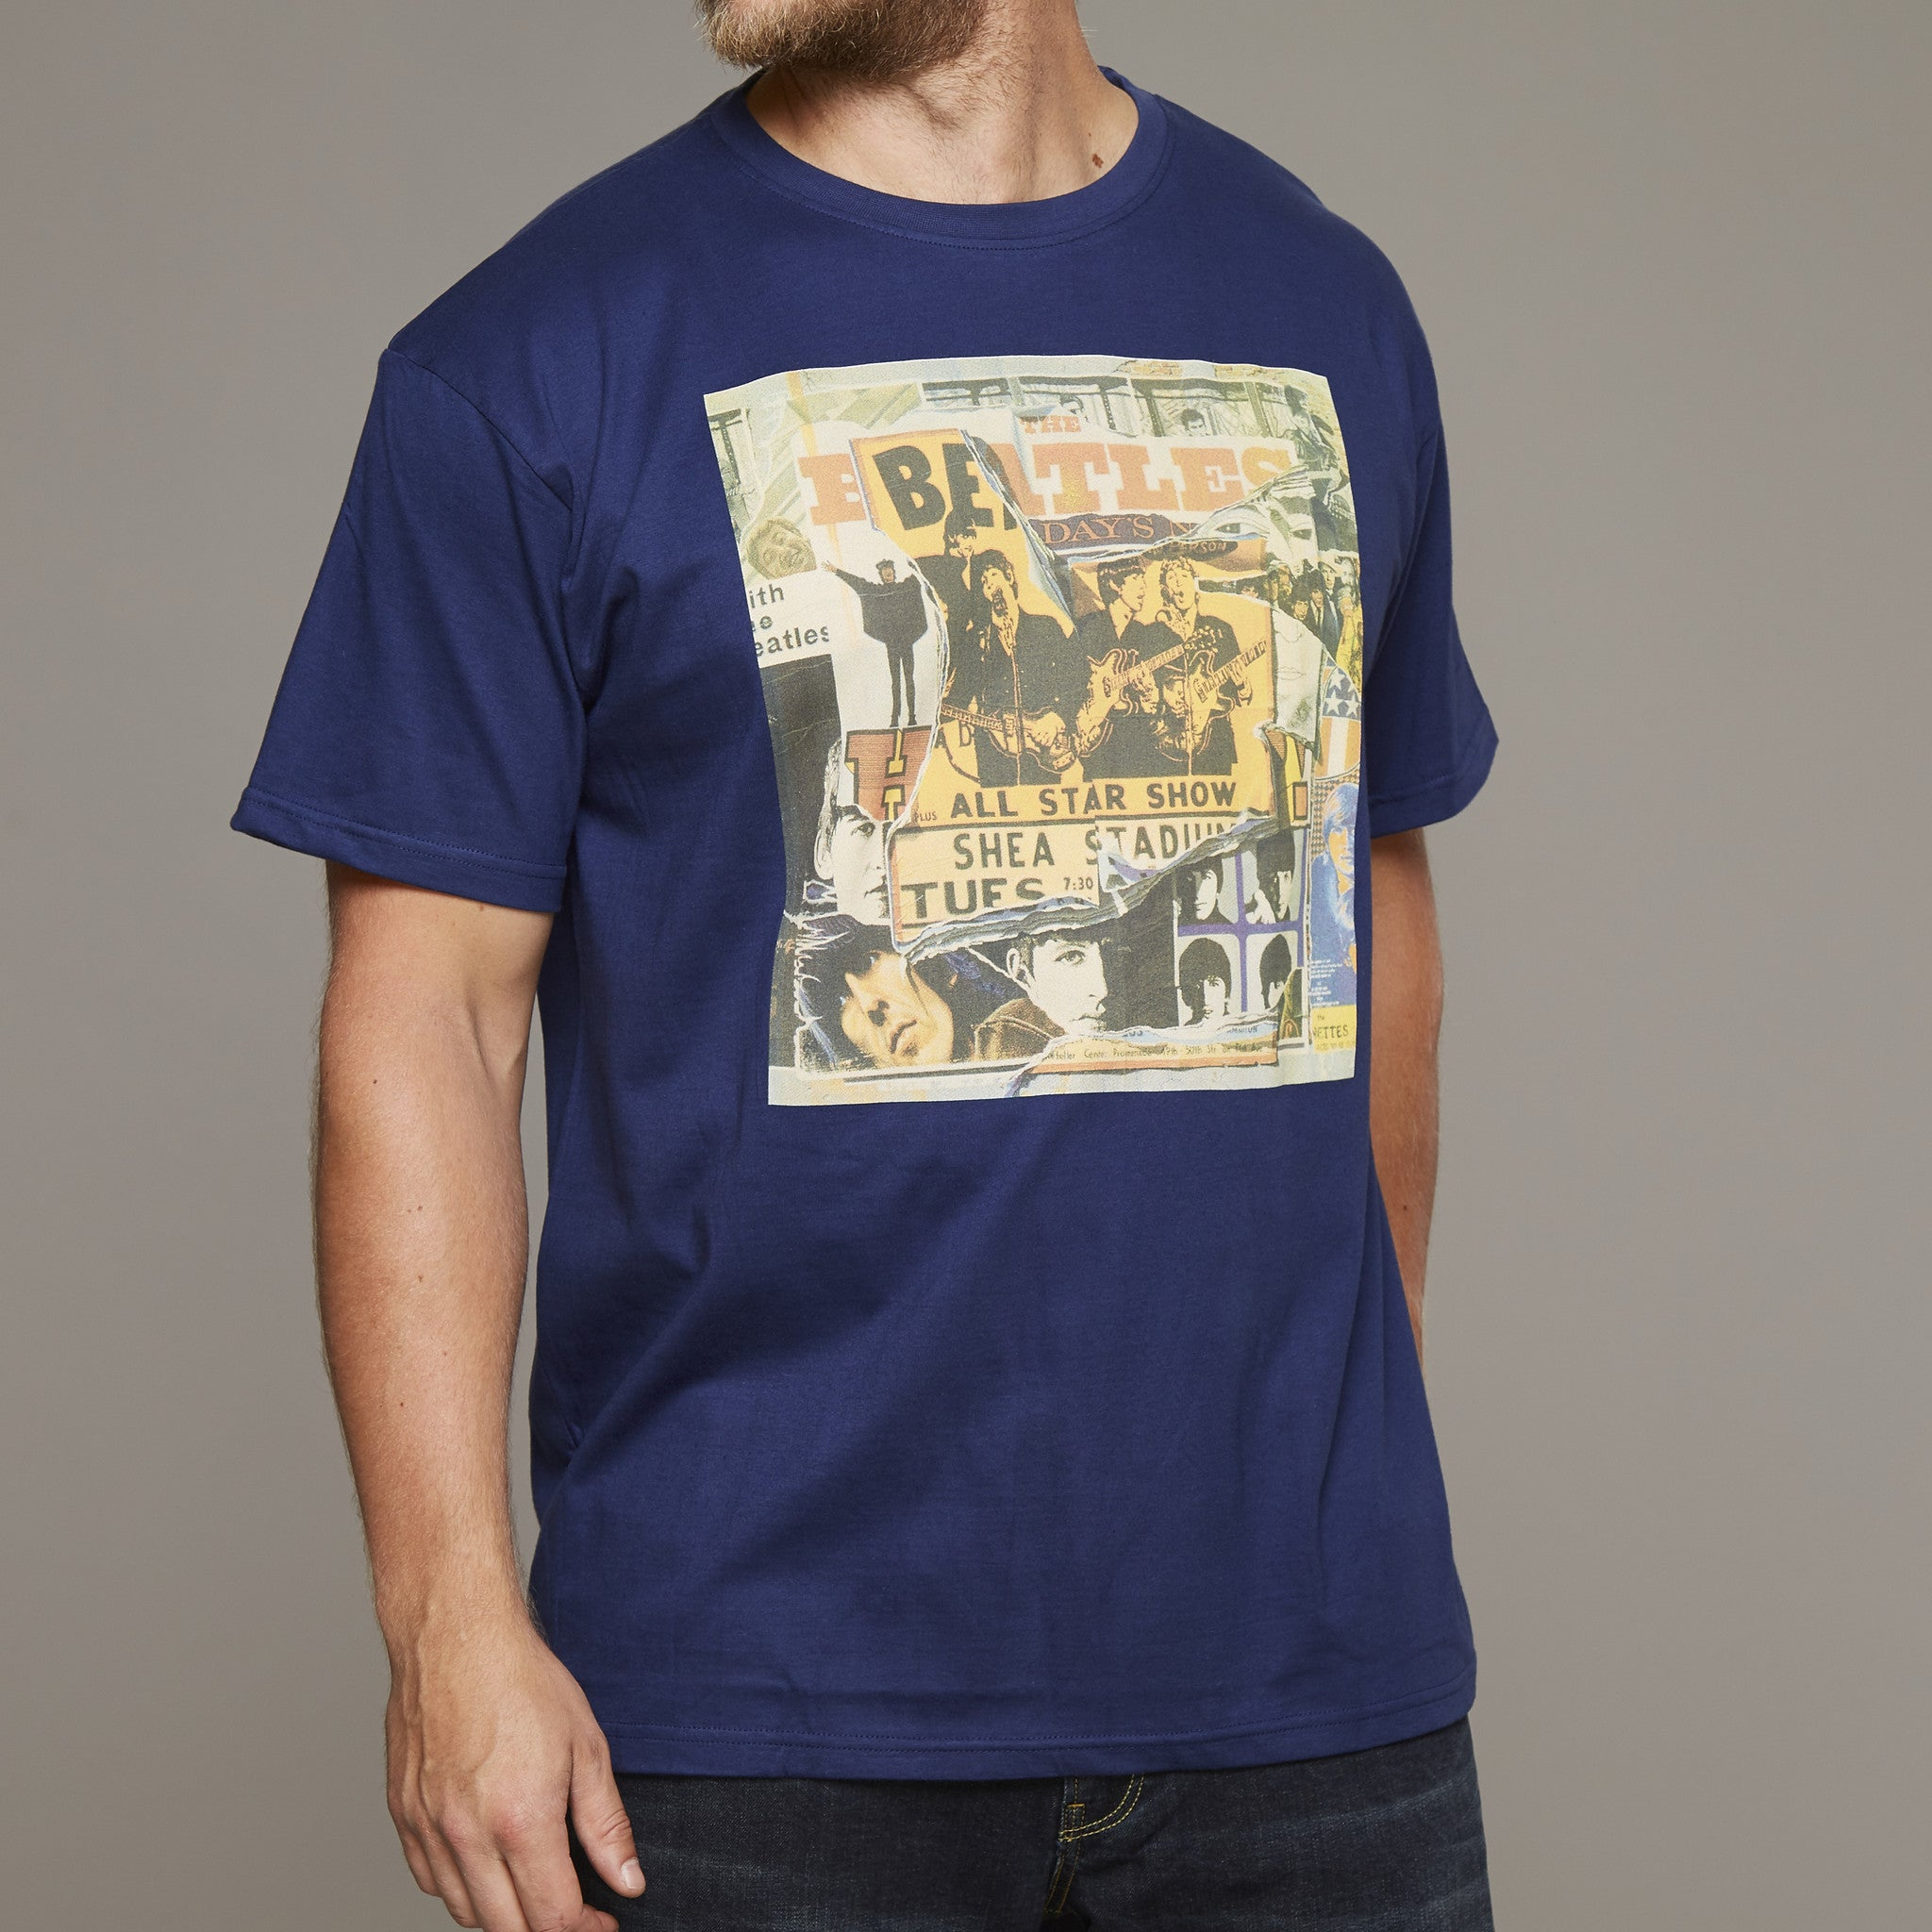 Replika Beatles Printed T-Shirt 100% cotton at Lil Johns Big and Tall men's Fashion